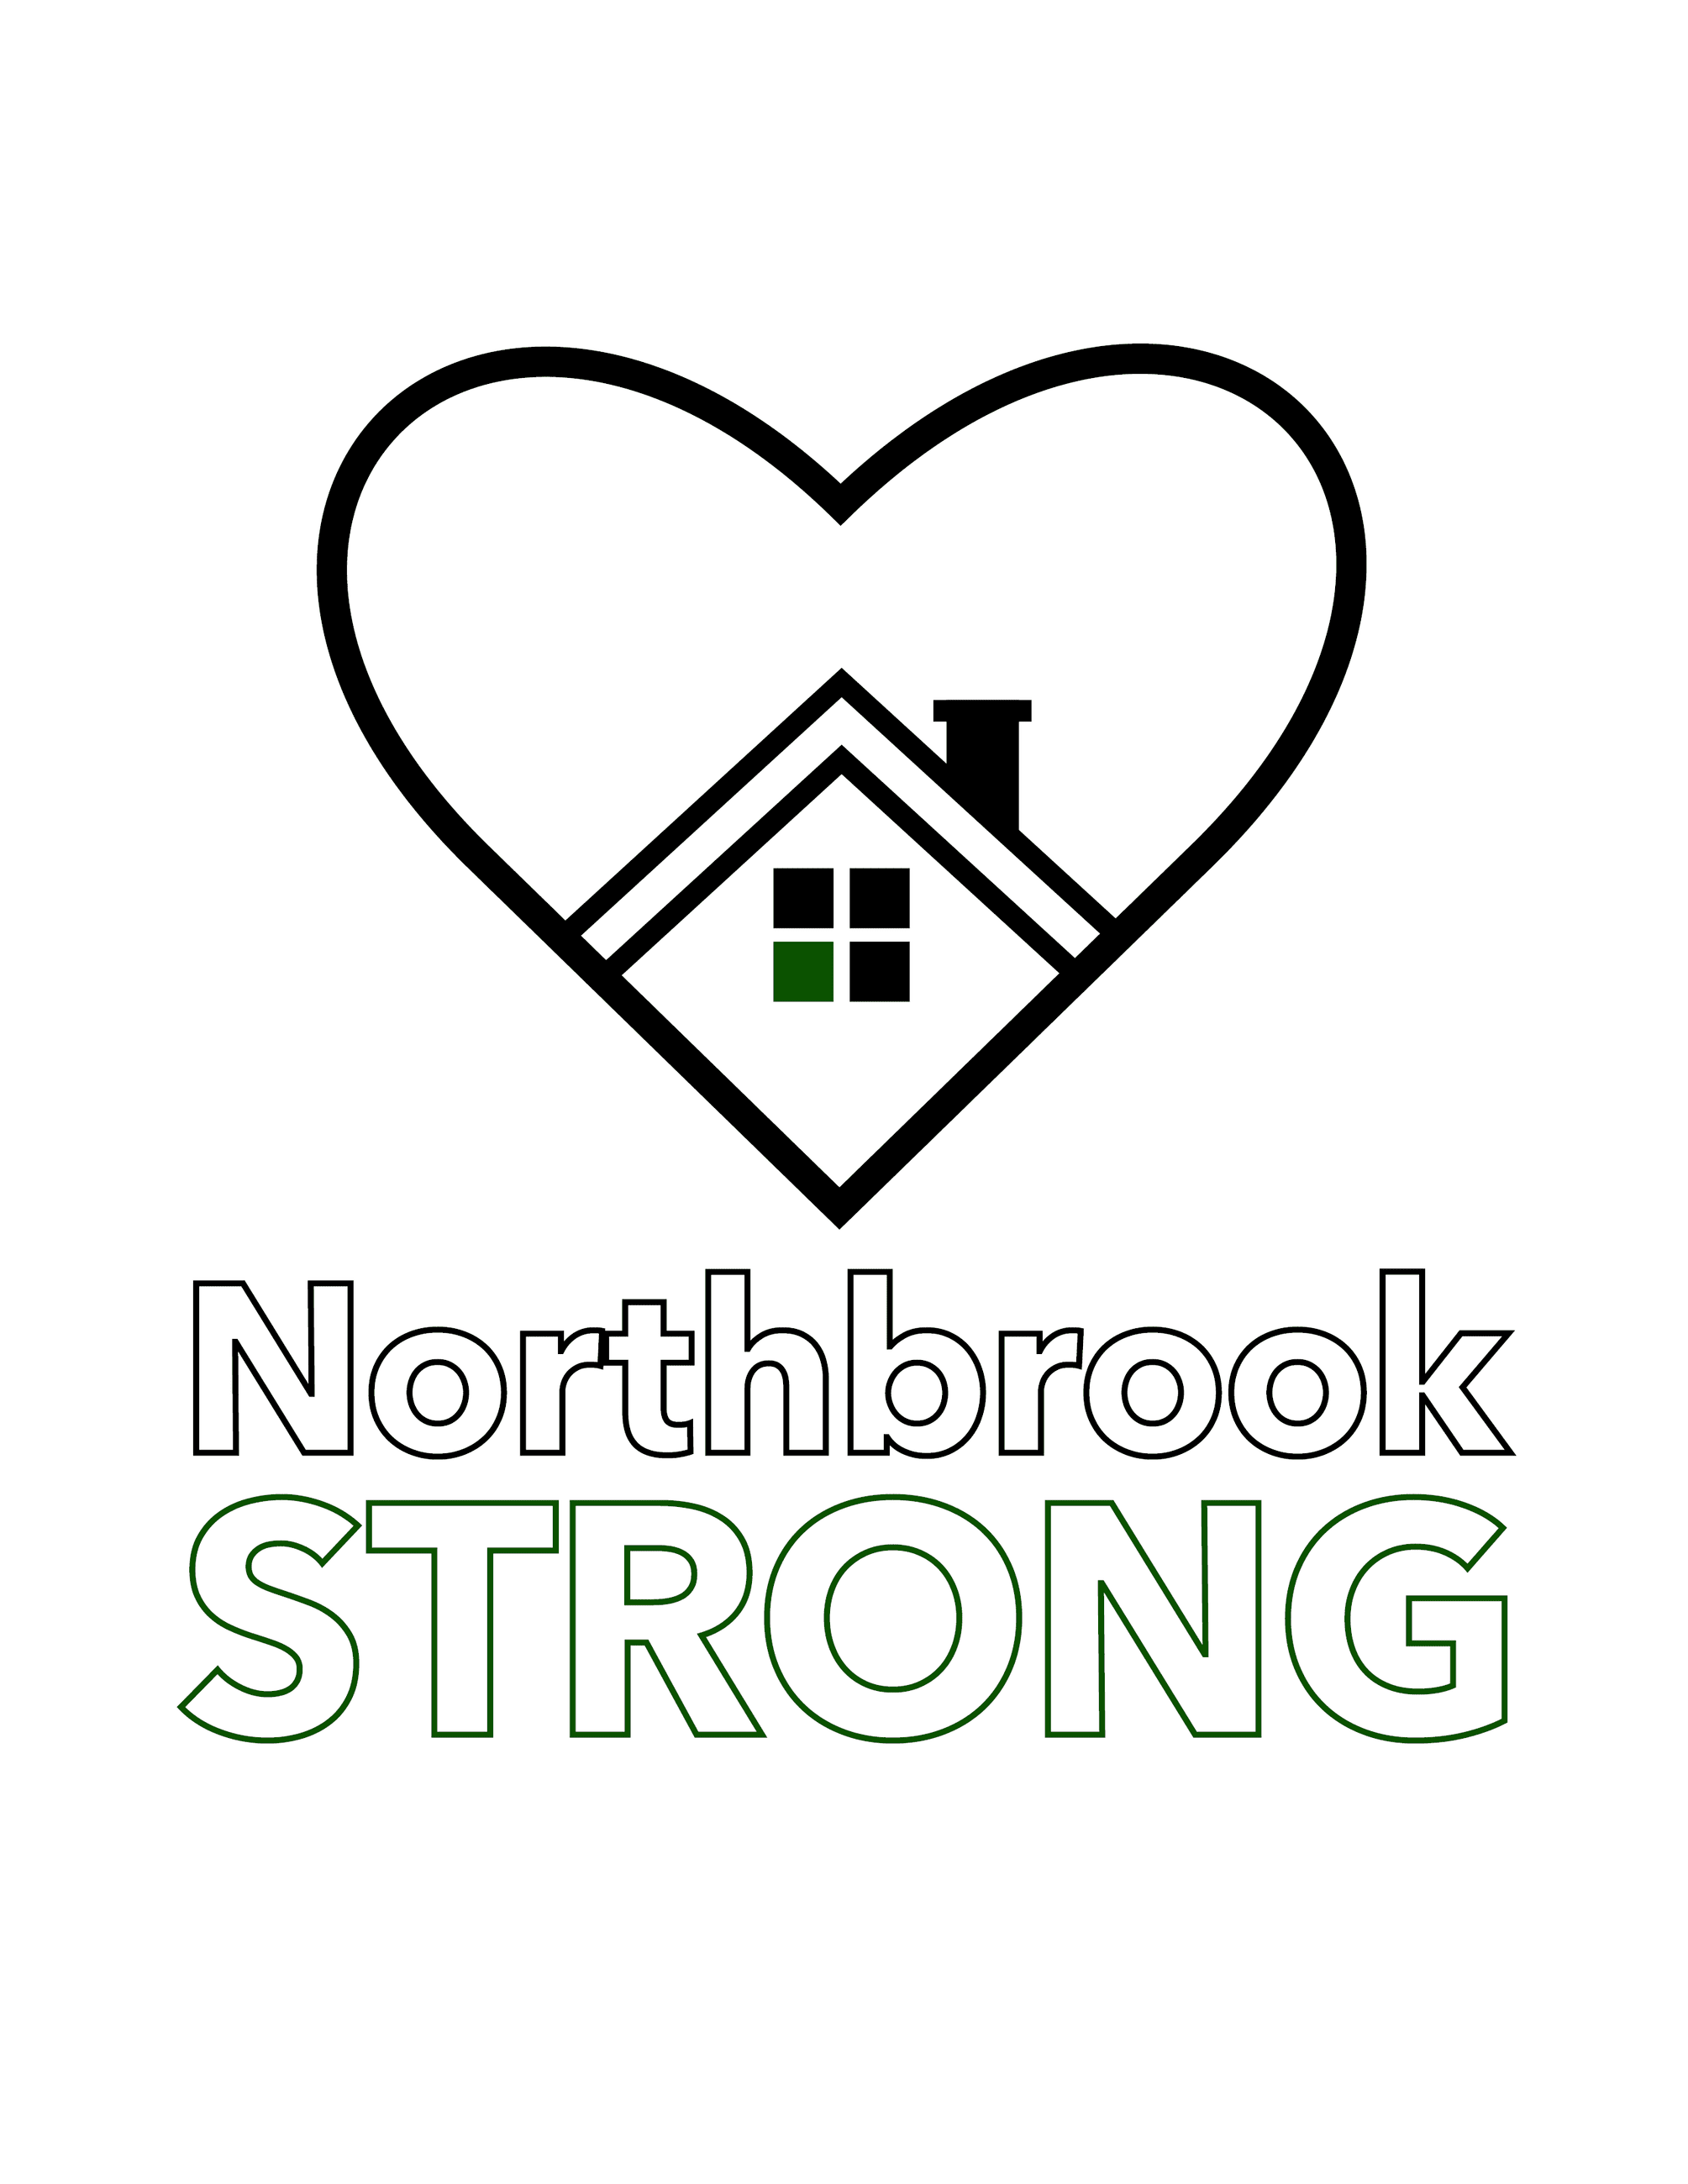 Northbrook Strong Coloring Sheet V2